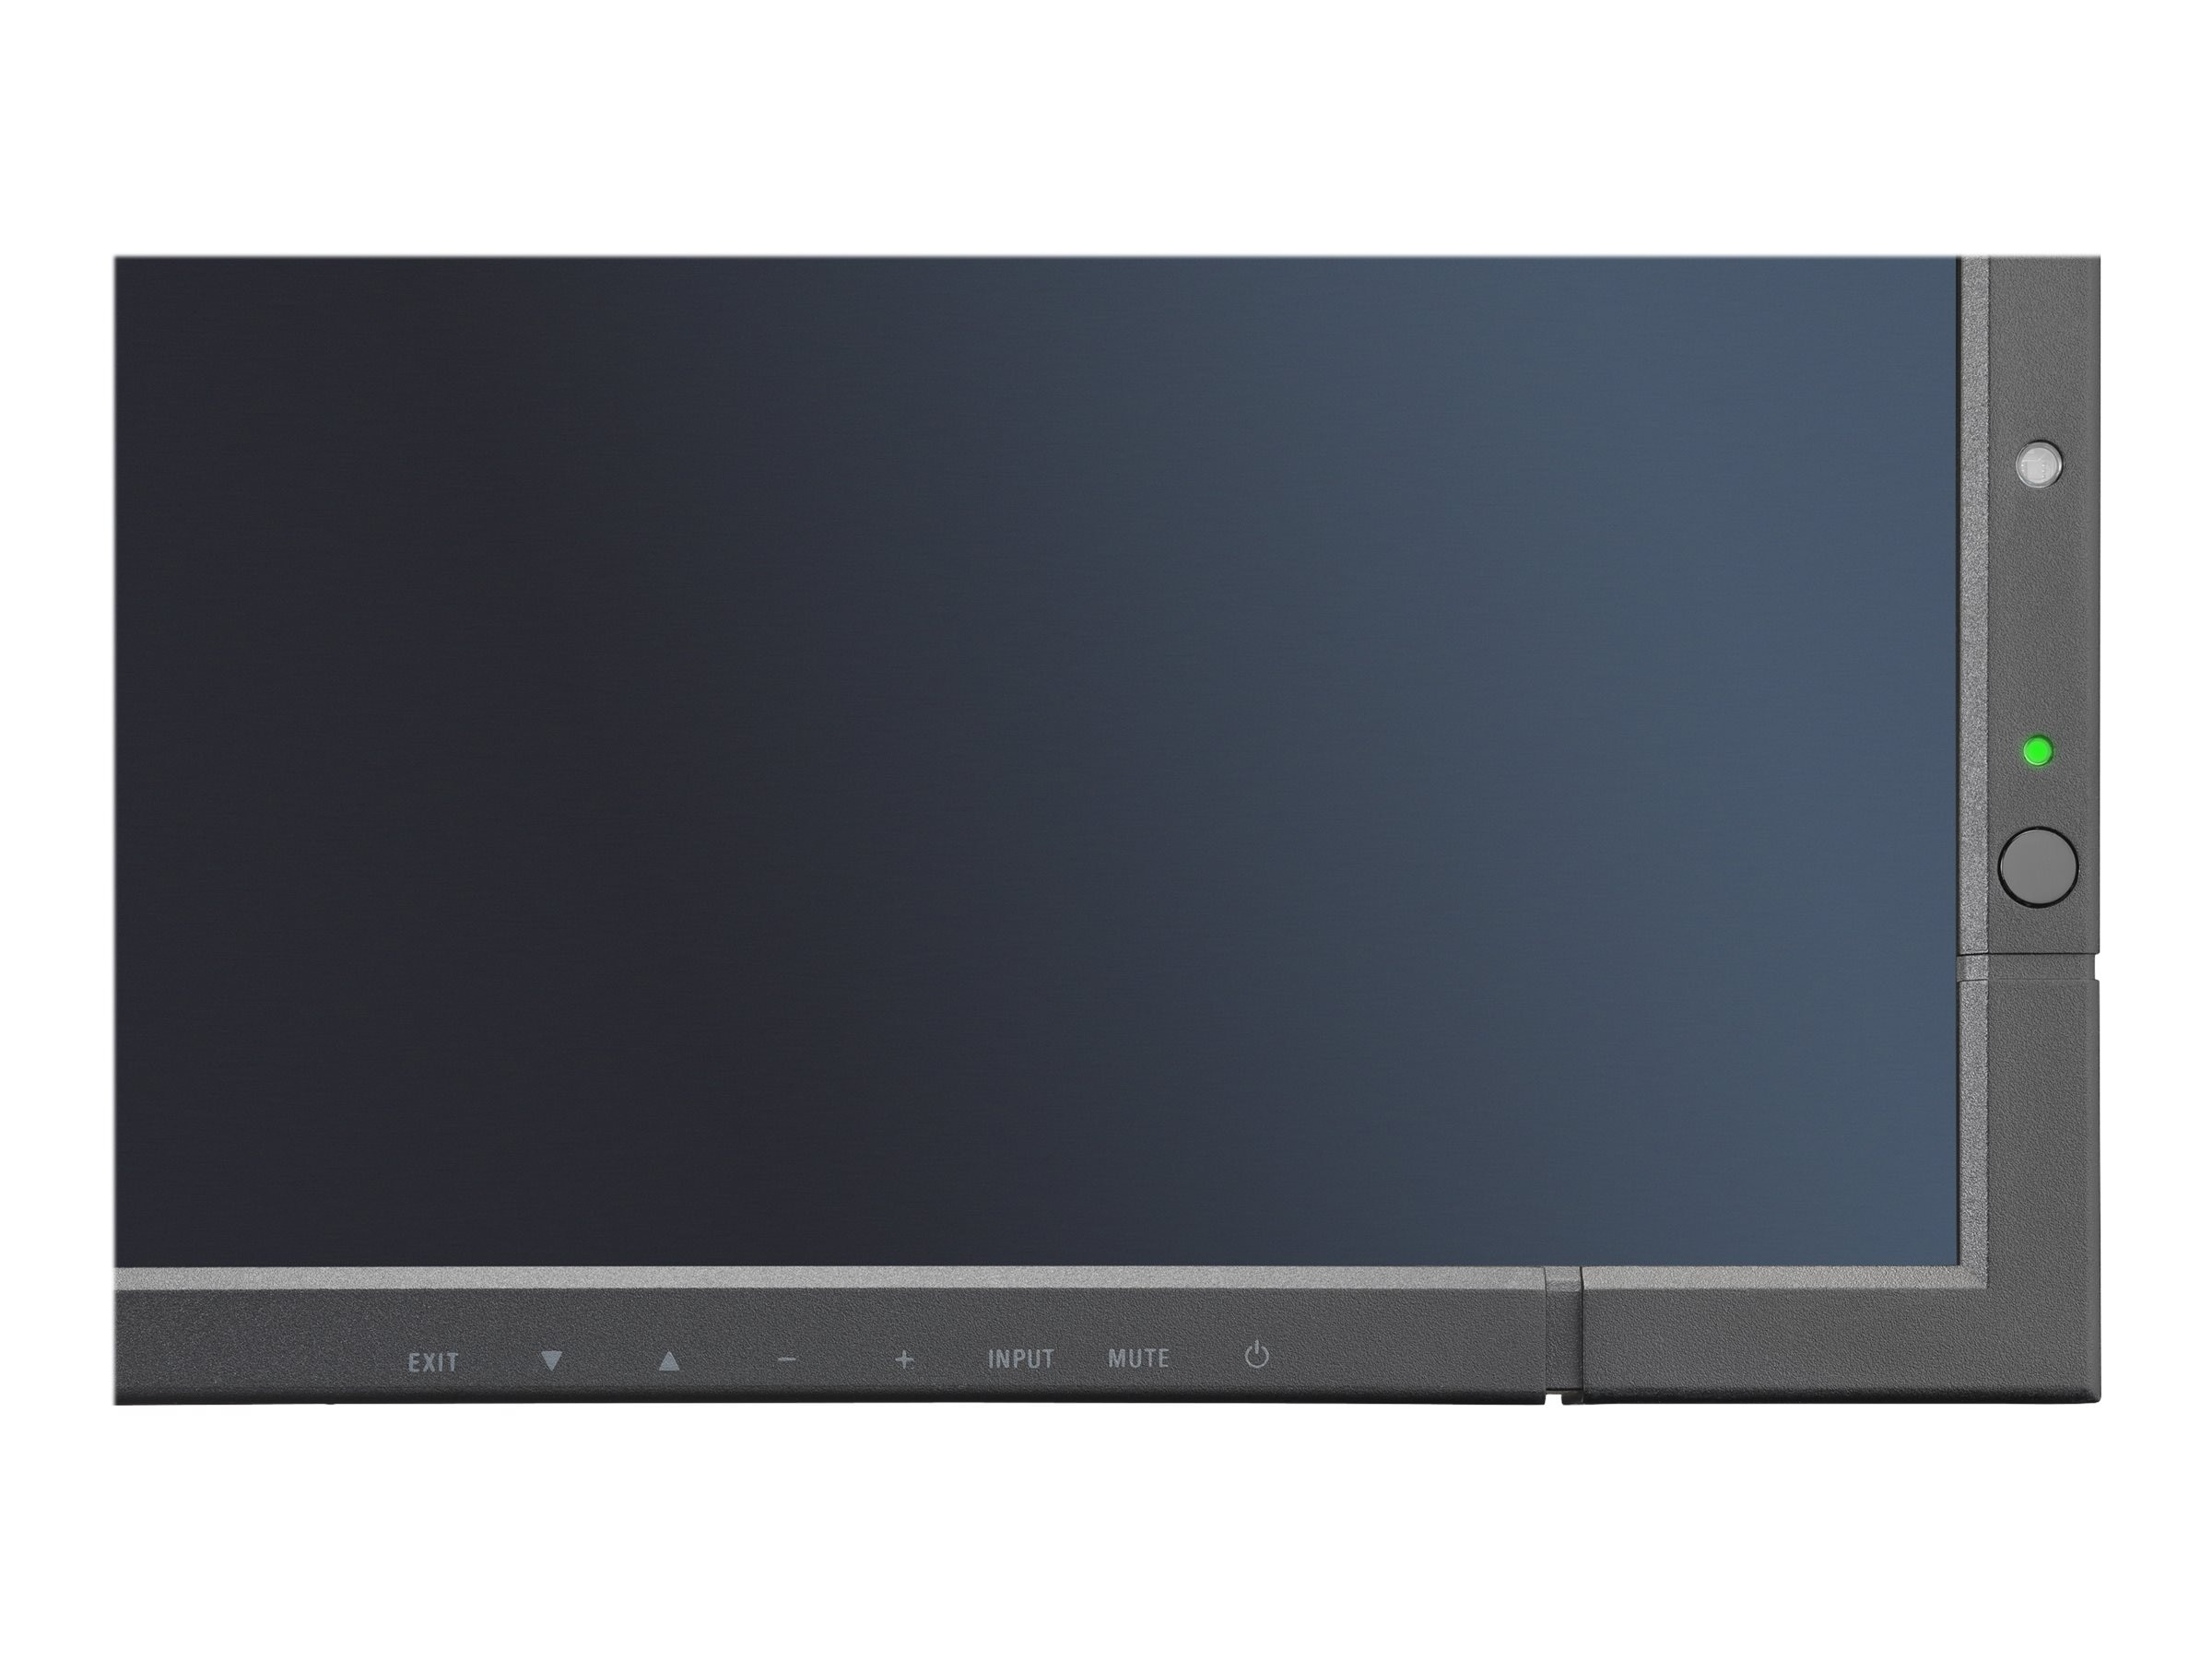 NEC 55 P553 Full HD LED-LCD Display with Integrated Computer, Black, P553-PC2